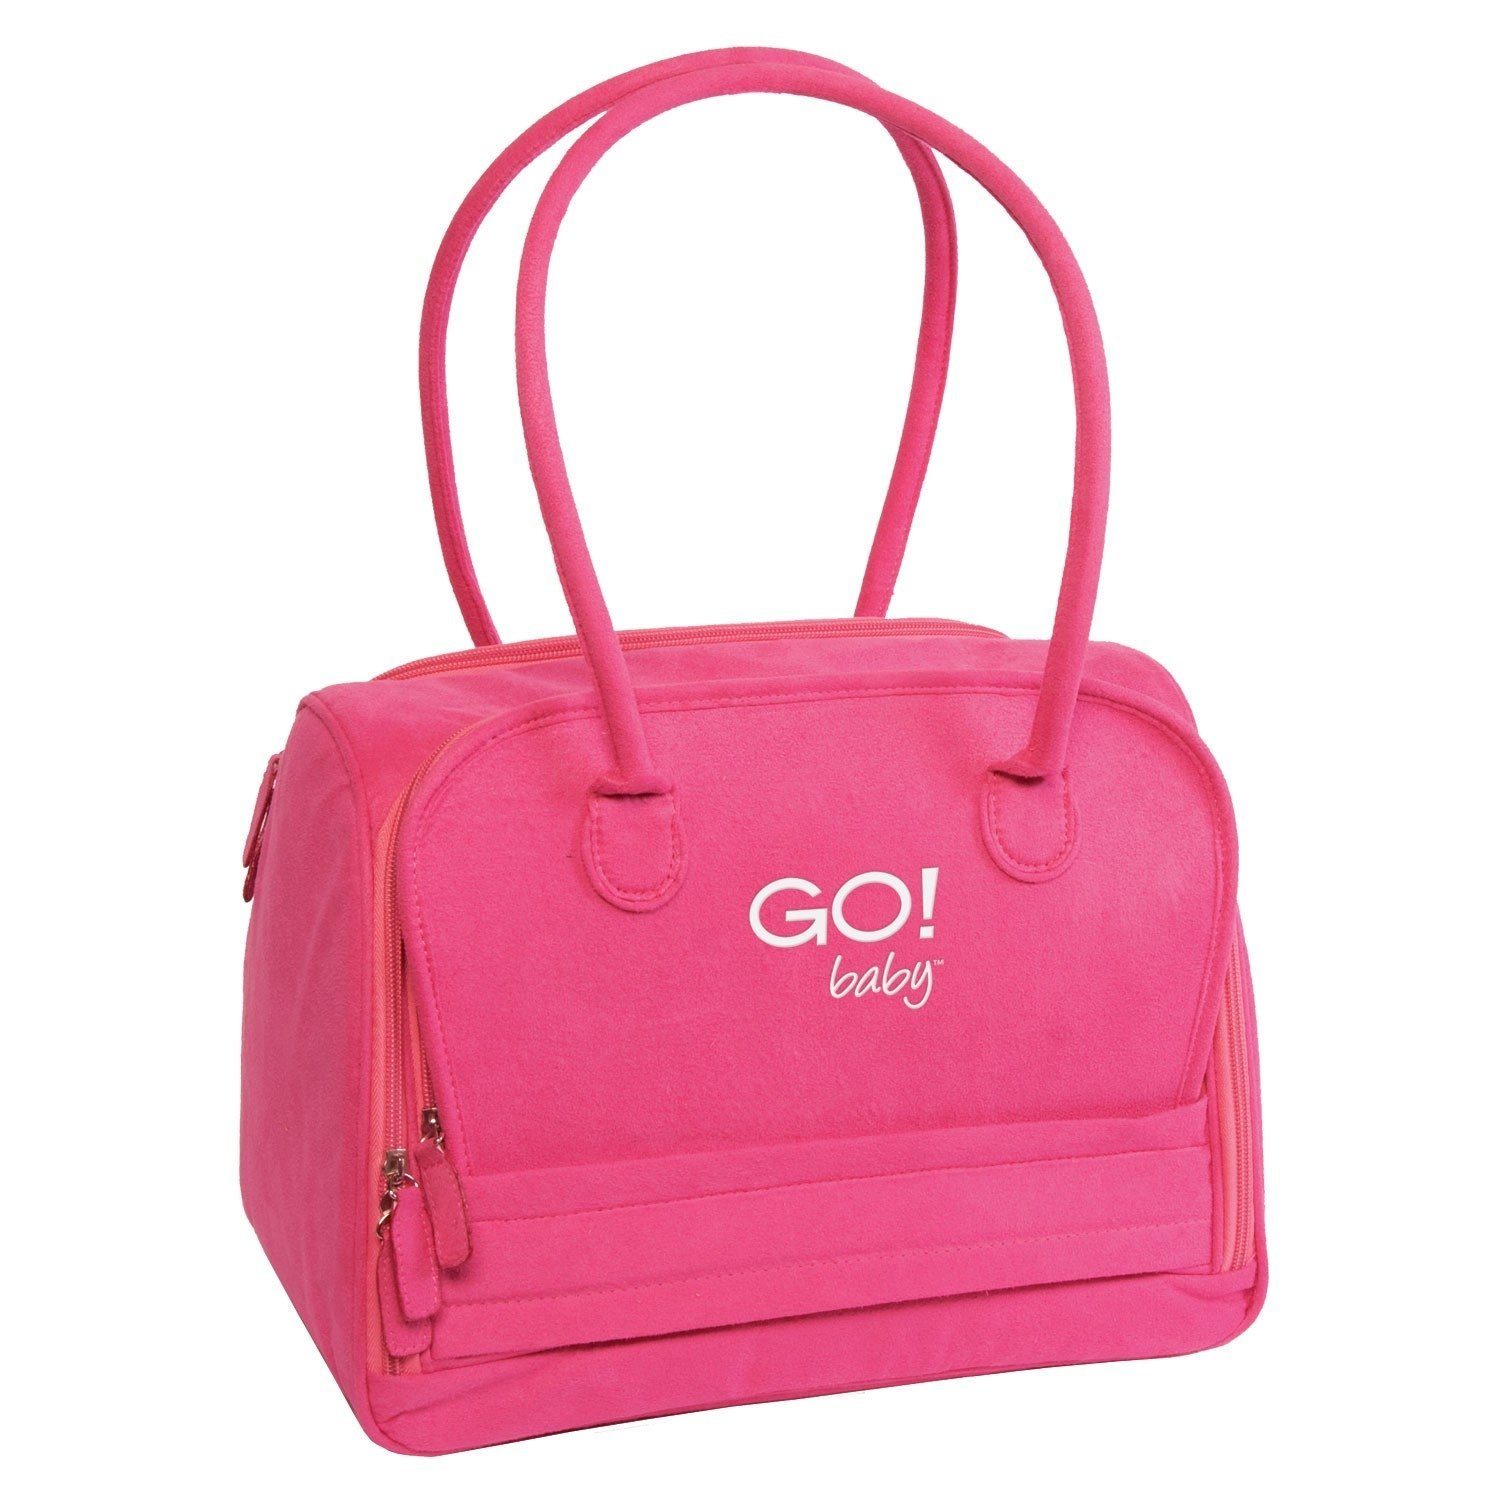 AccuQuilt GO Baby Fabric Cutter Tote   B004C6DMA8